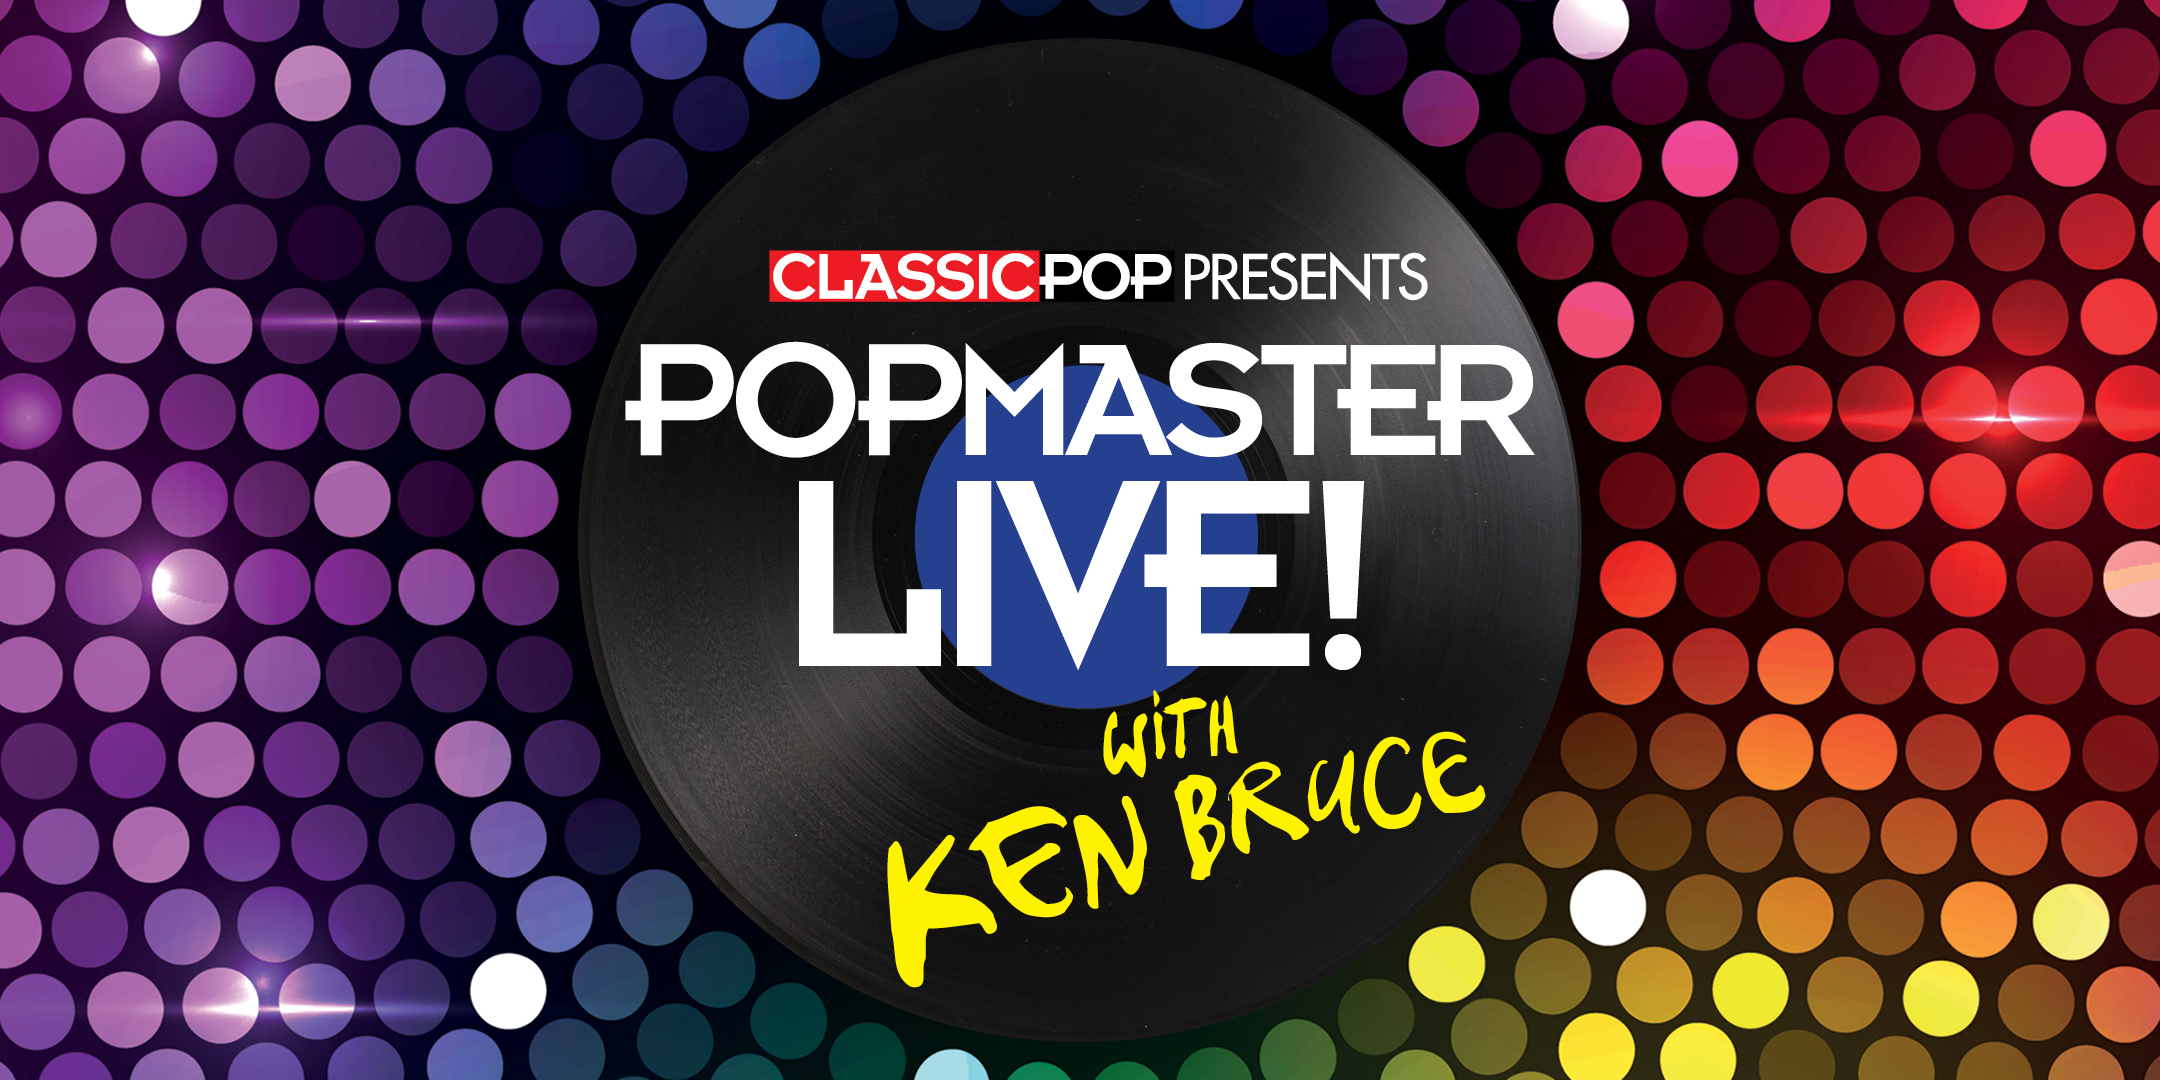 Classic Pop presents Popmaster Live! with Ken Bruce